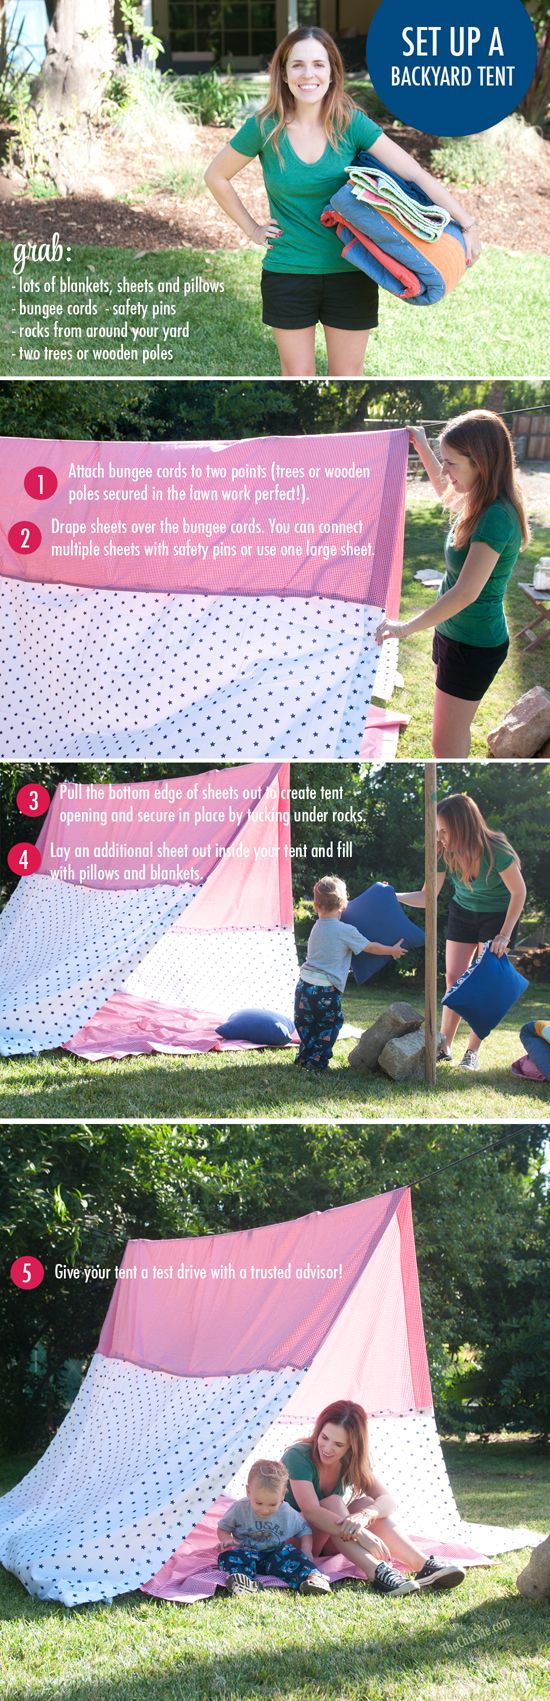 How to Set Up a Backyard Camp Site - This DIY has all the steps needed to entertain the kids and friends this summer